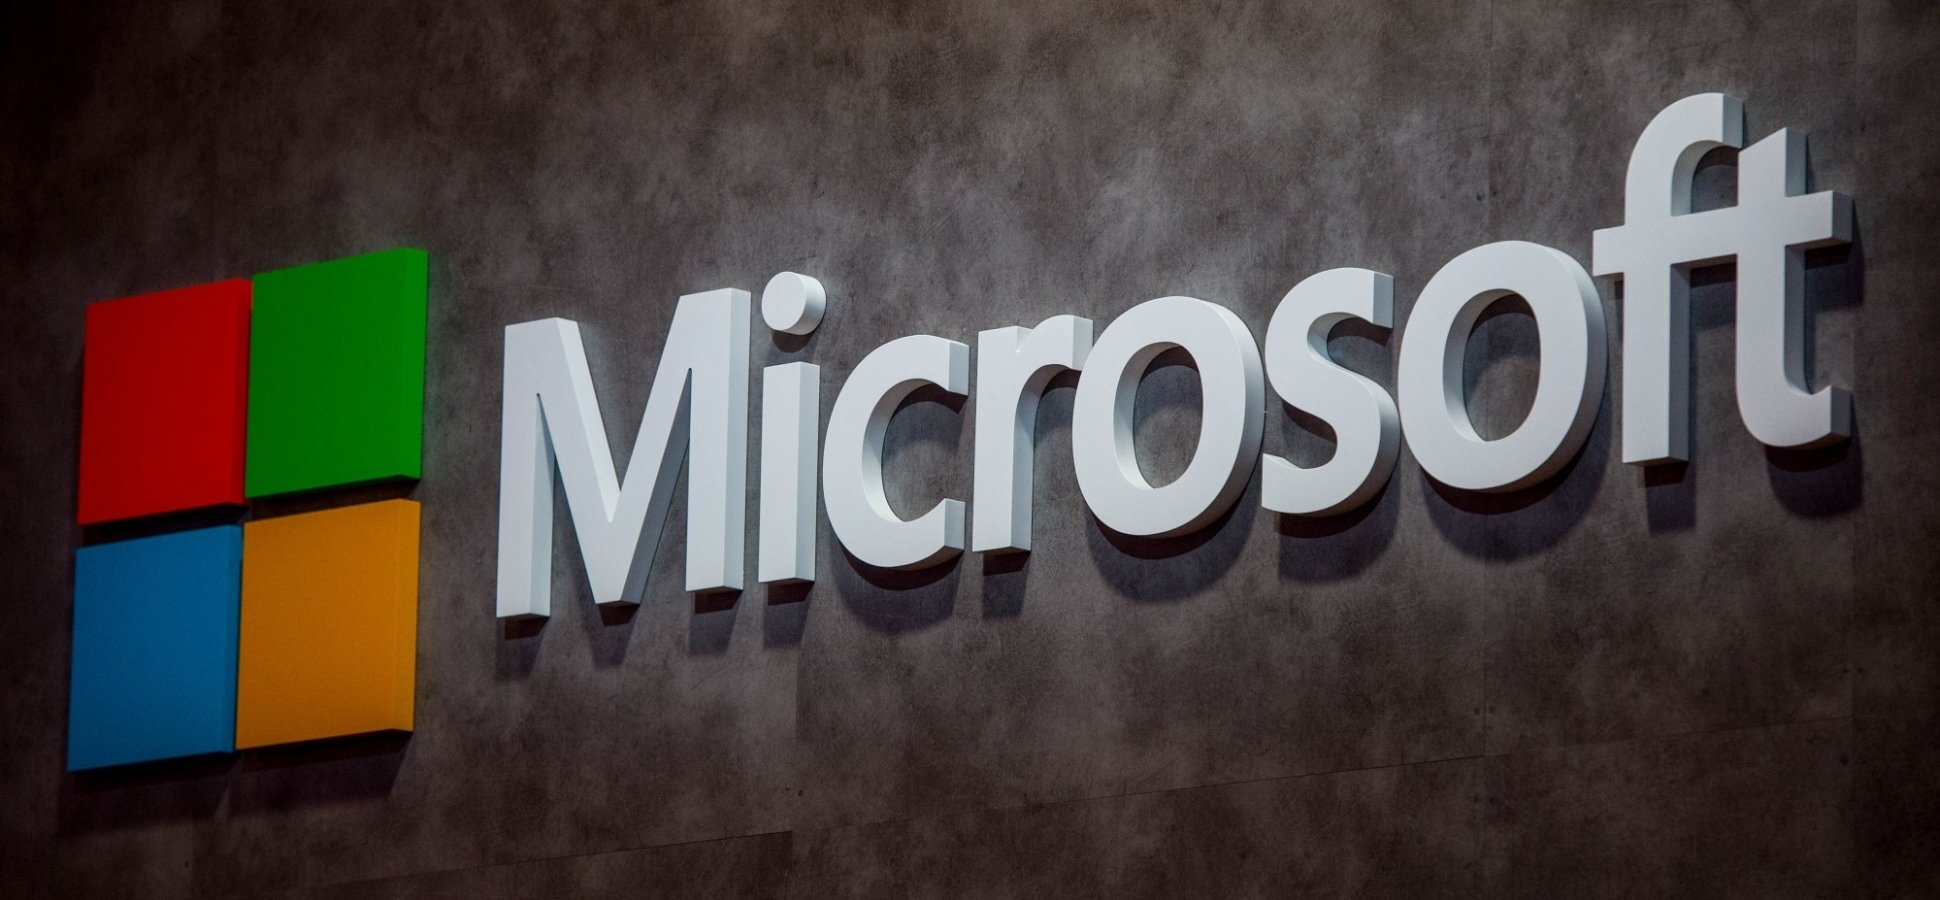 Microsoft offices design Wayfinding The New Ribbon In Microsoft Office Might Scare Everyone In The Office but Theres Hope Inc The New Ribbon In Microsoft Office Might Scare Everyone In The